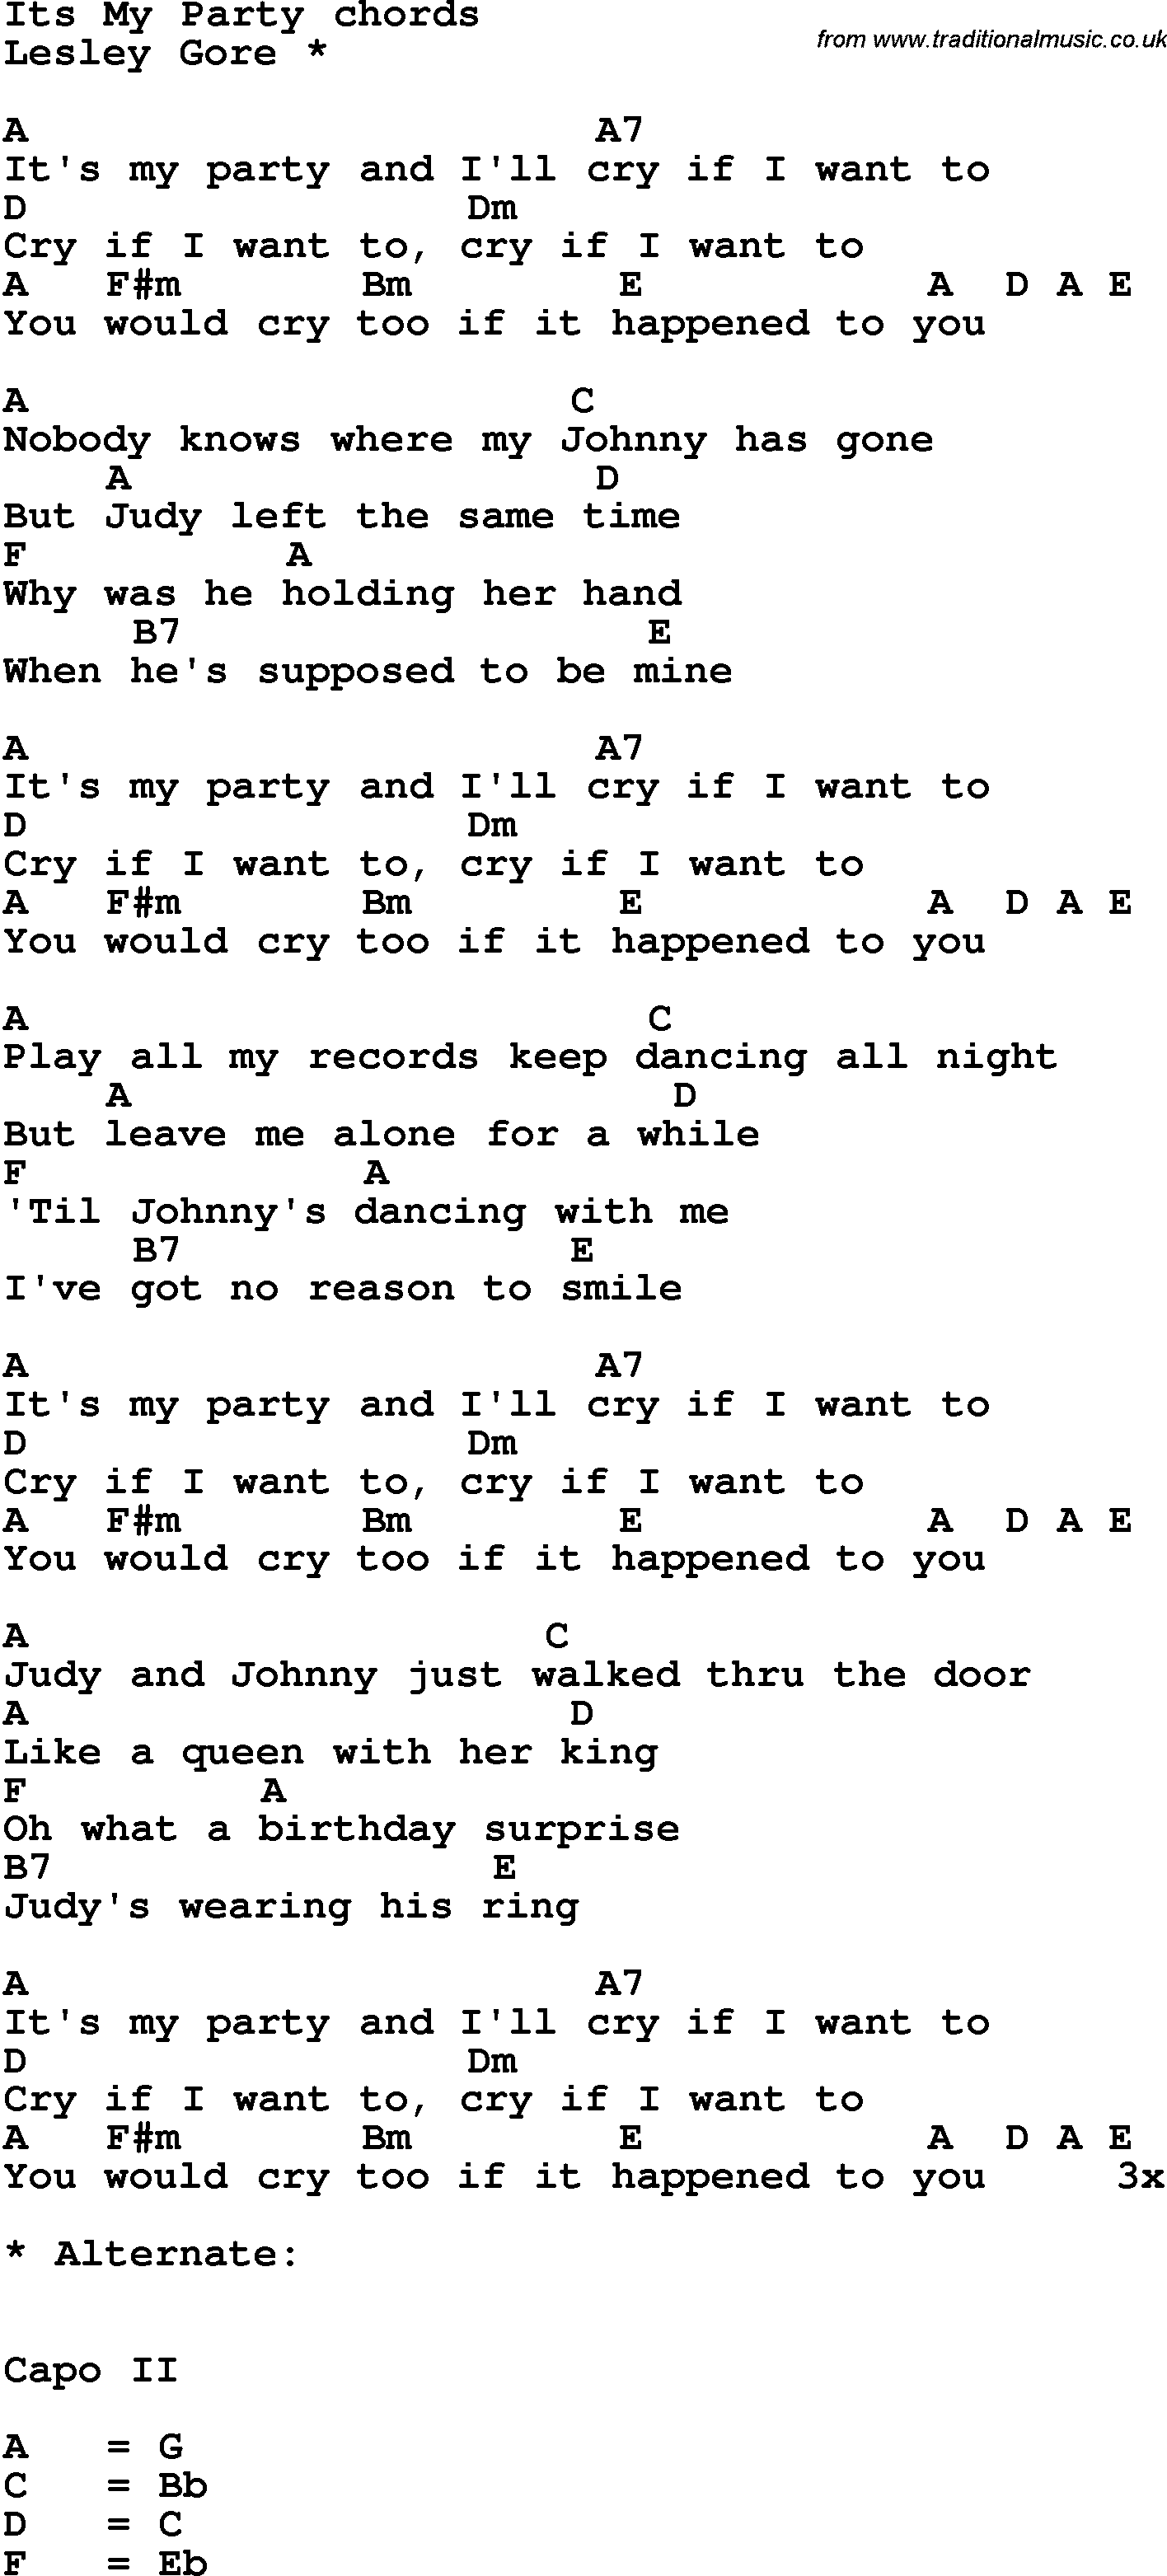 Song Lyrics With Guitar Chords For It S My Party In 2020 Songs Great Song Lyrics Silly Songs